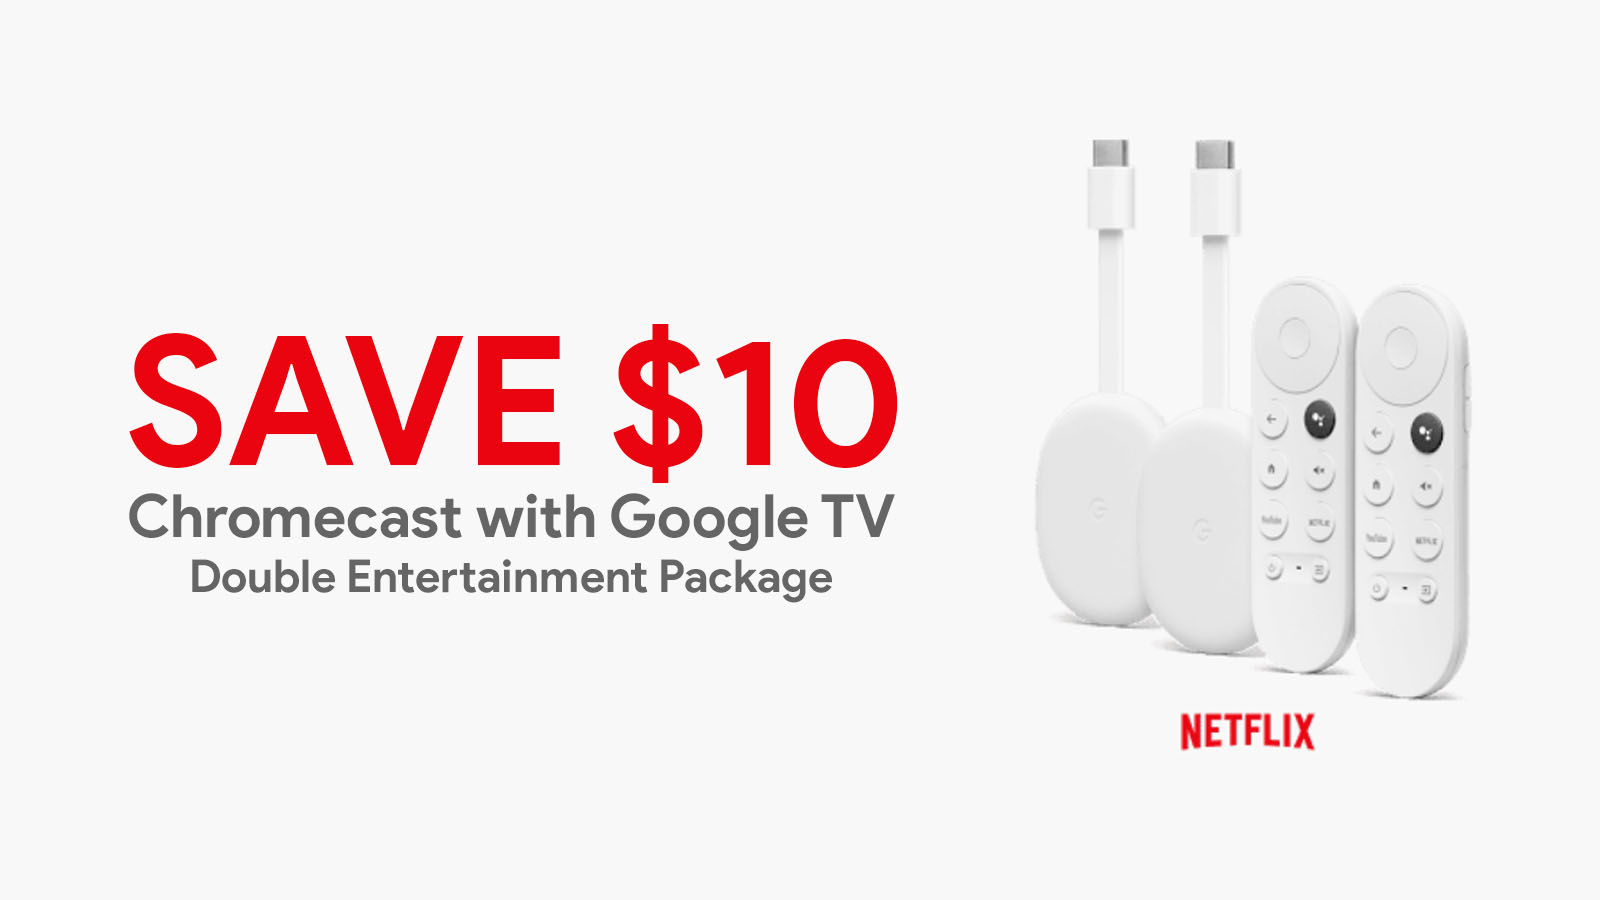 Save $10 on the Chromecast with Google TV Double Entertainment Package